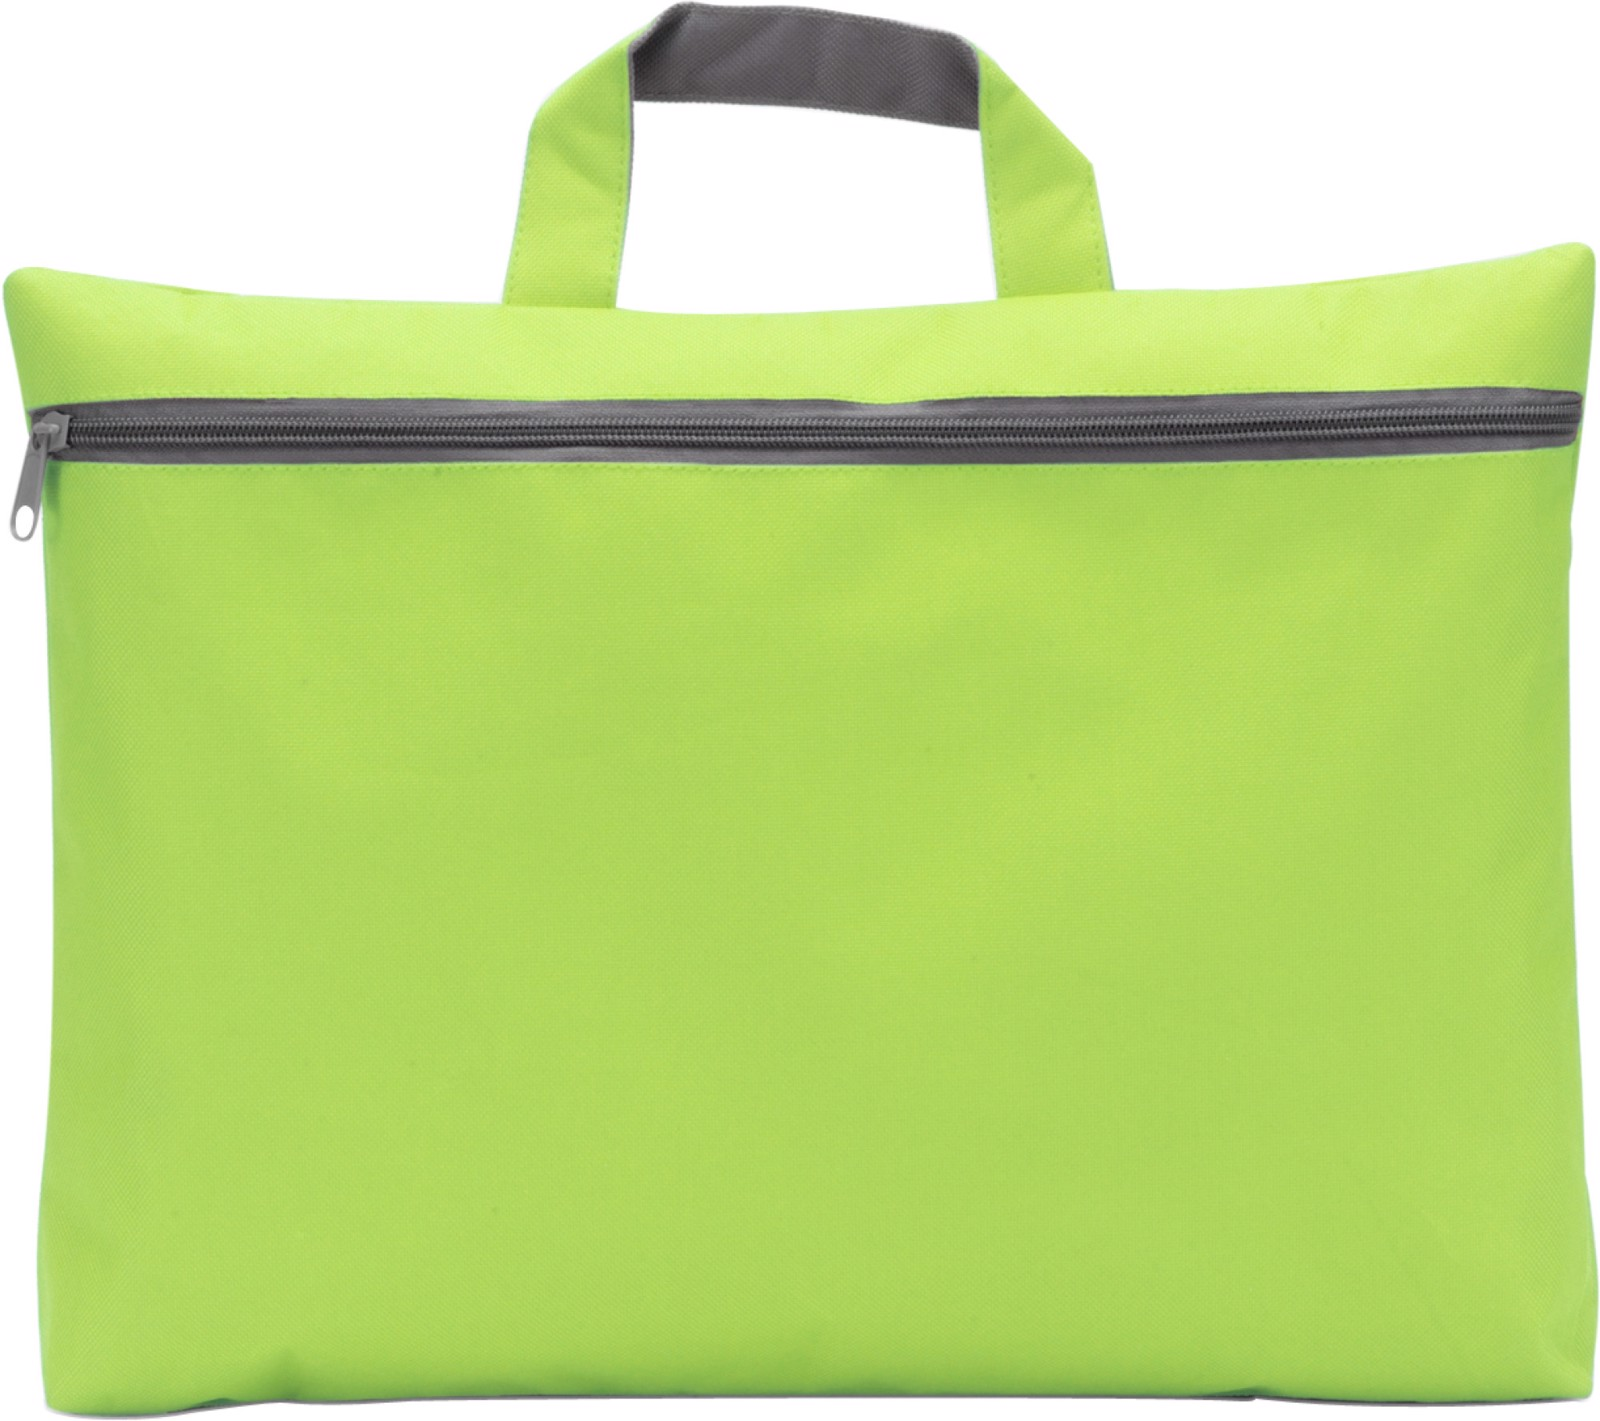 Polyester (600D) conference bag - Lime